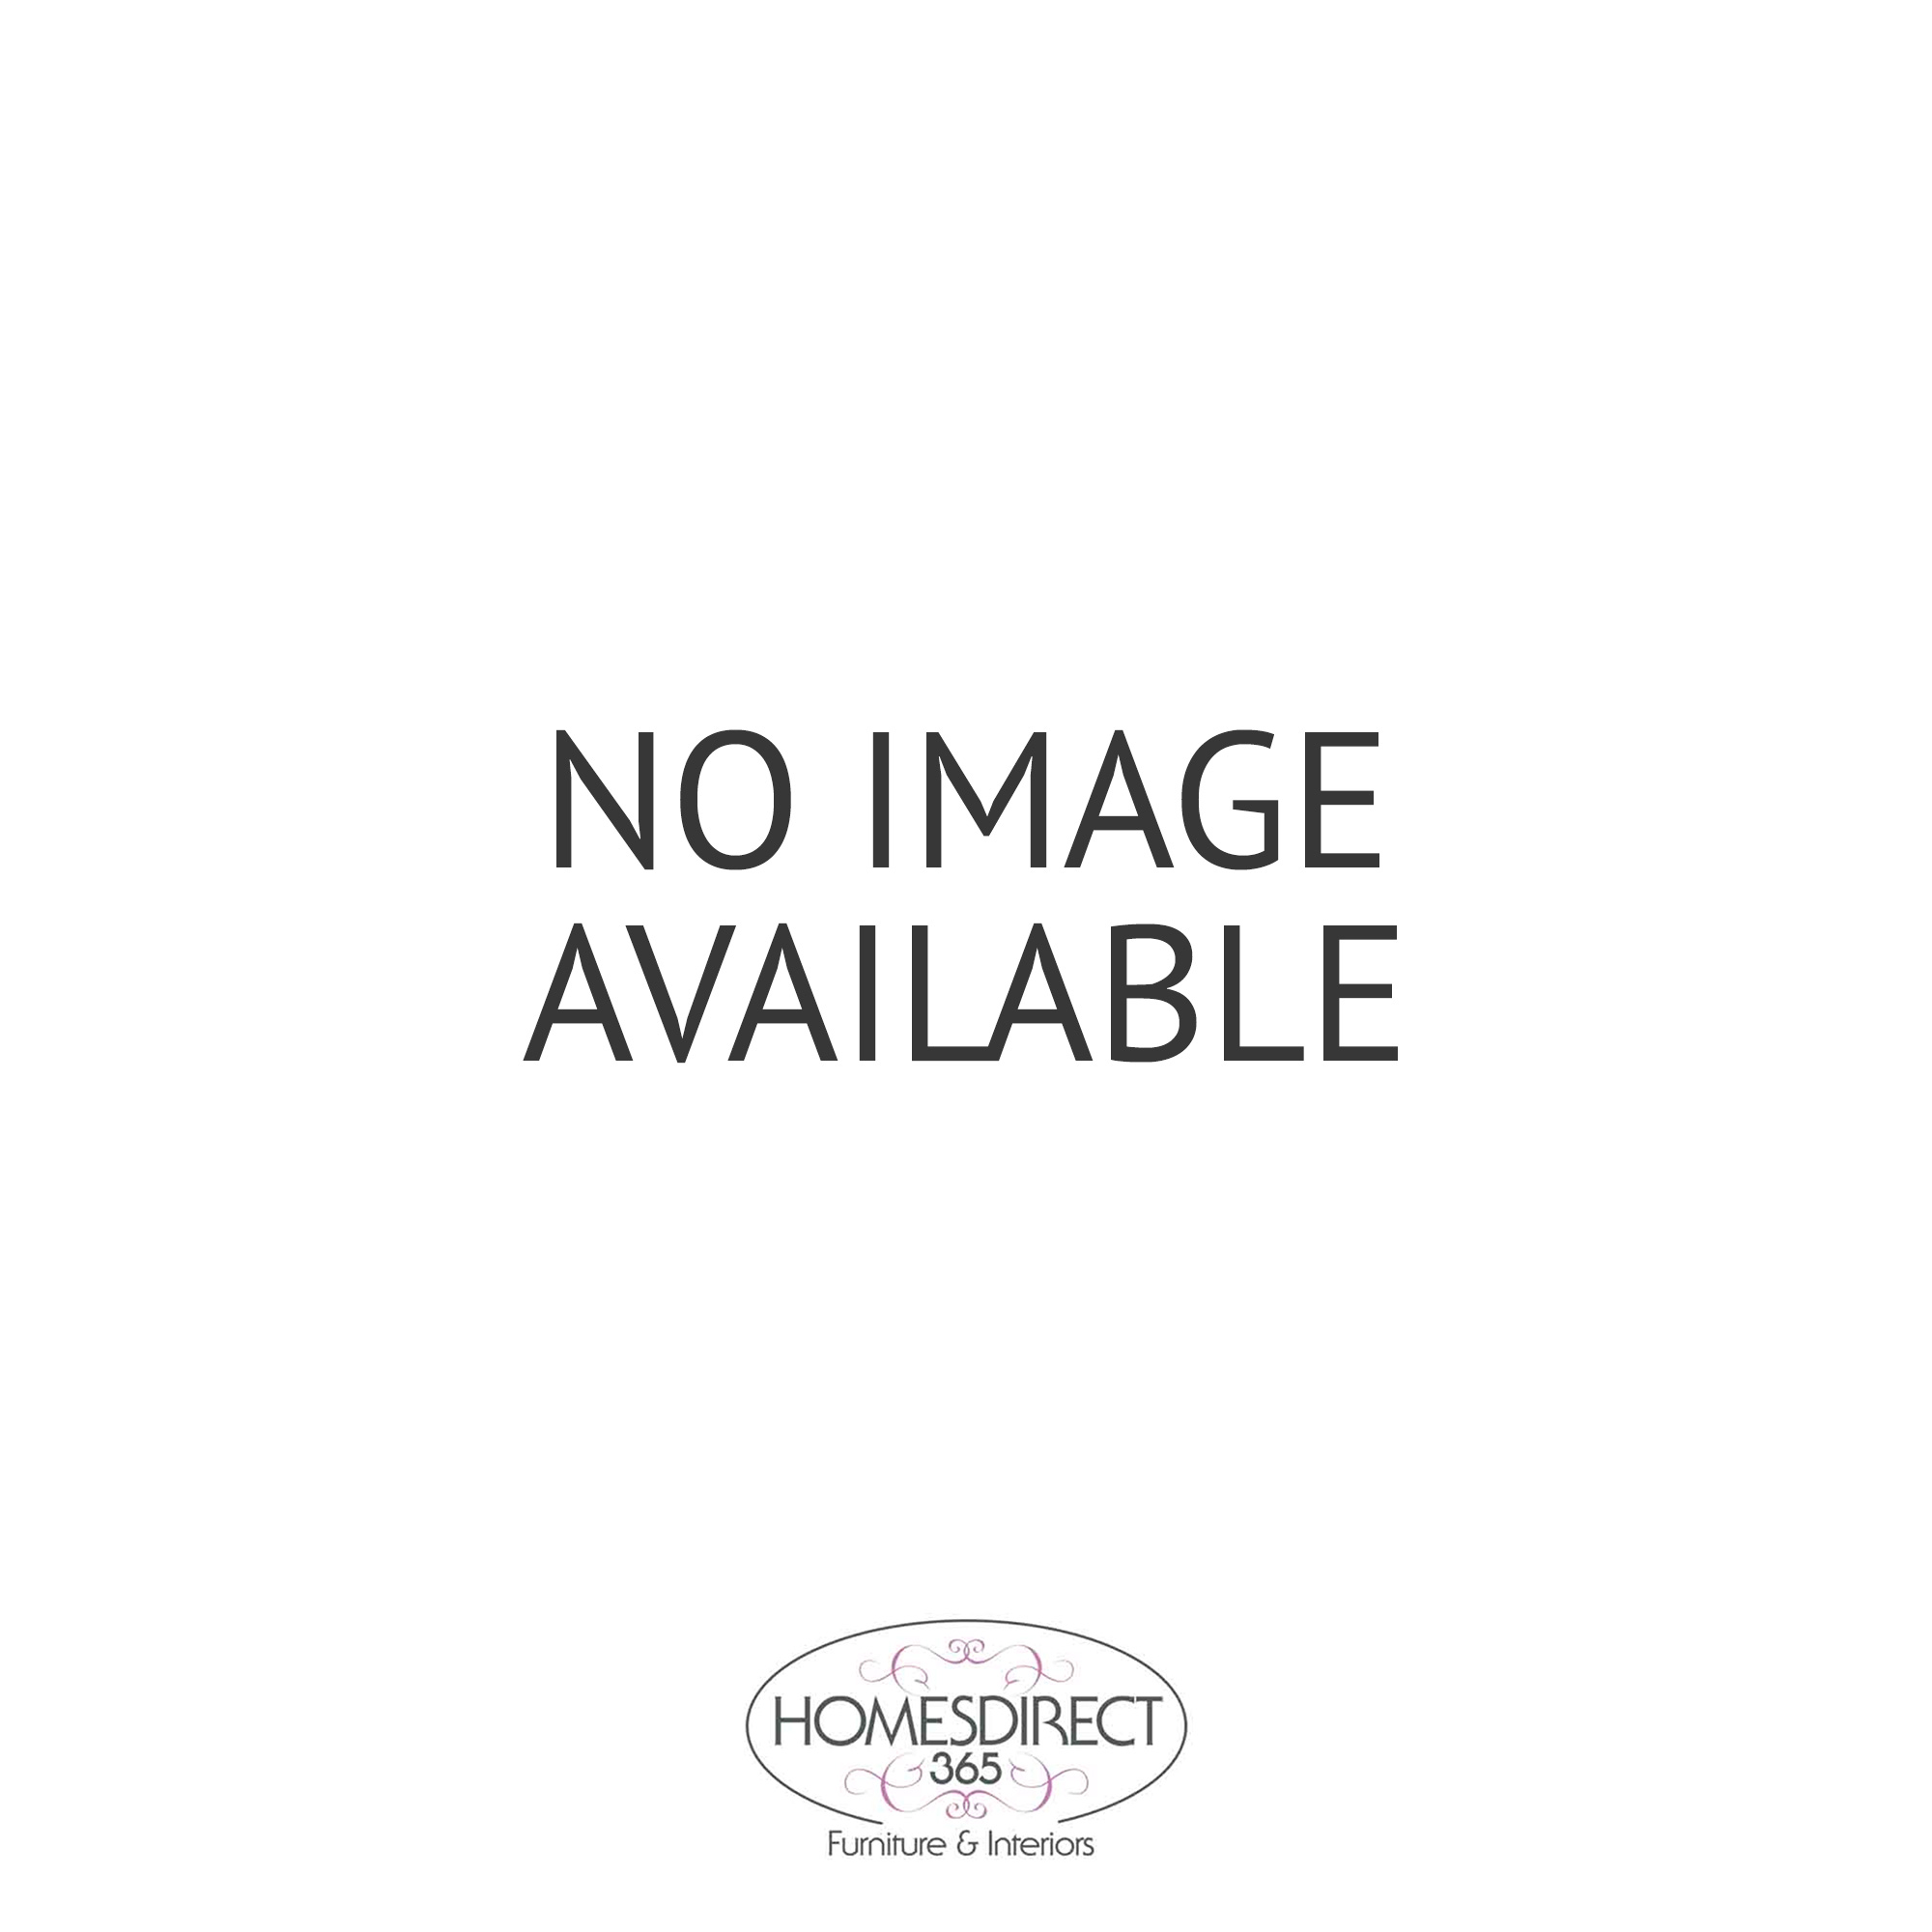 Wooden Coffee Table With Round Glass Homesdirect365